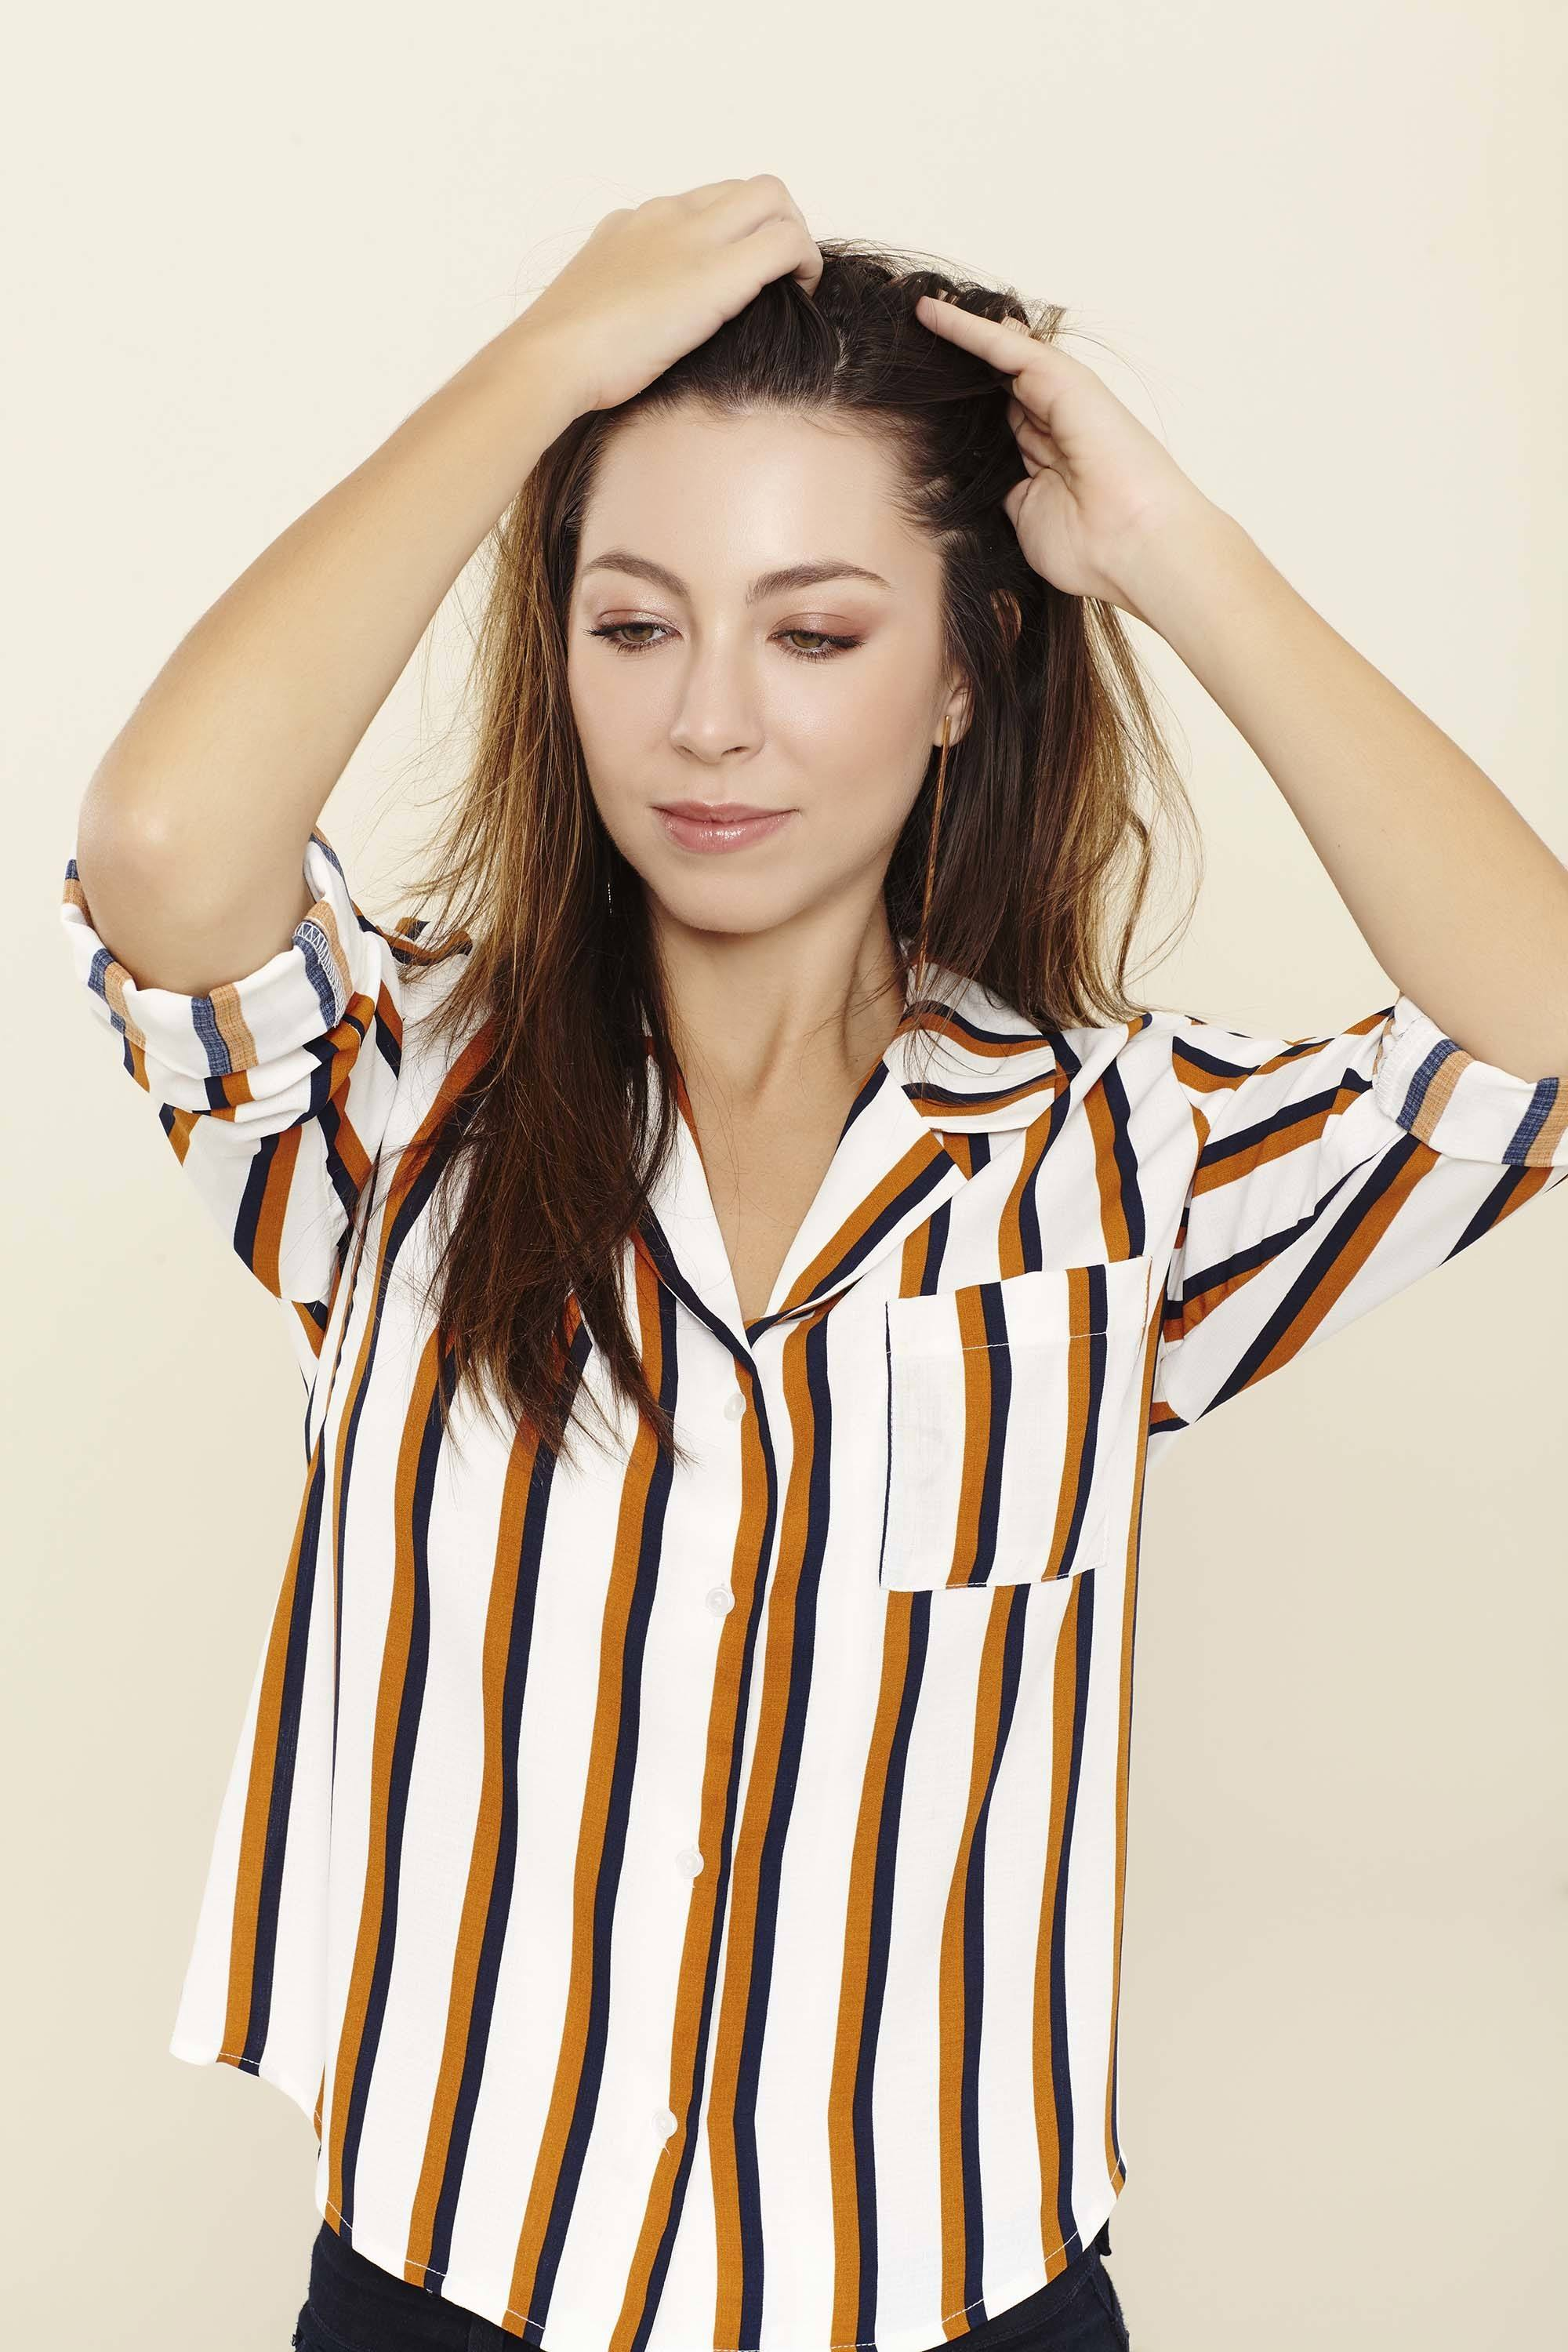 Shampoo full guide: Woman touching her long brown straight hair wearing a brown and white striped shirt.